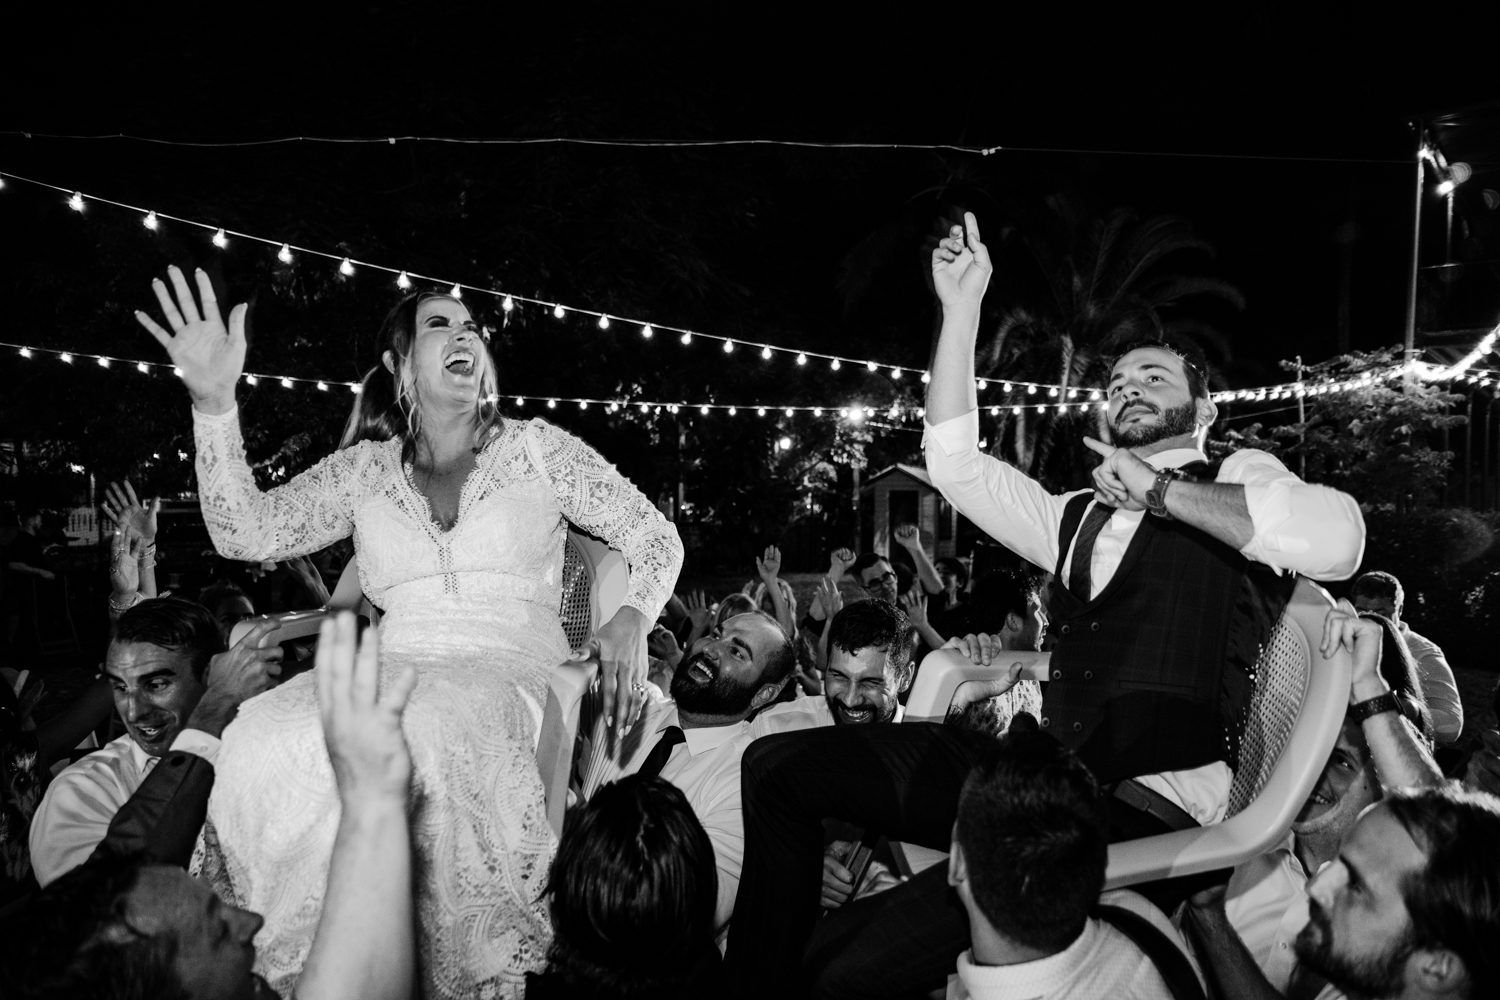 Bride and groom being carried on a chair at her wedding reception